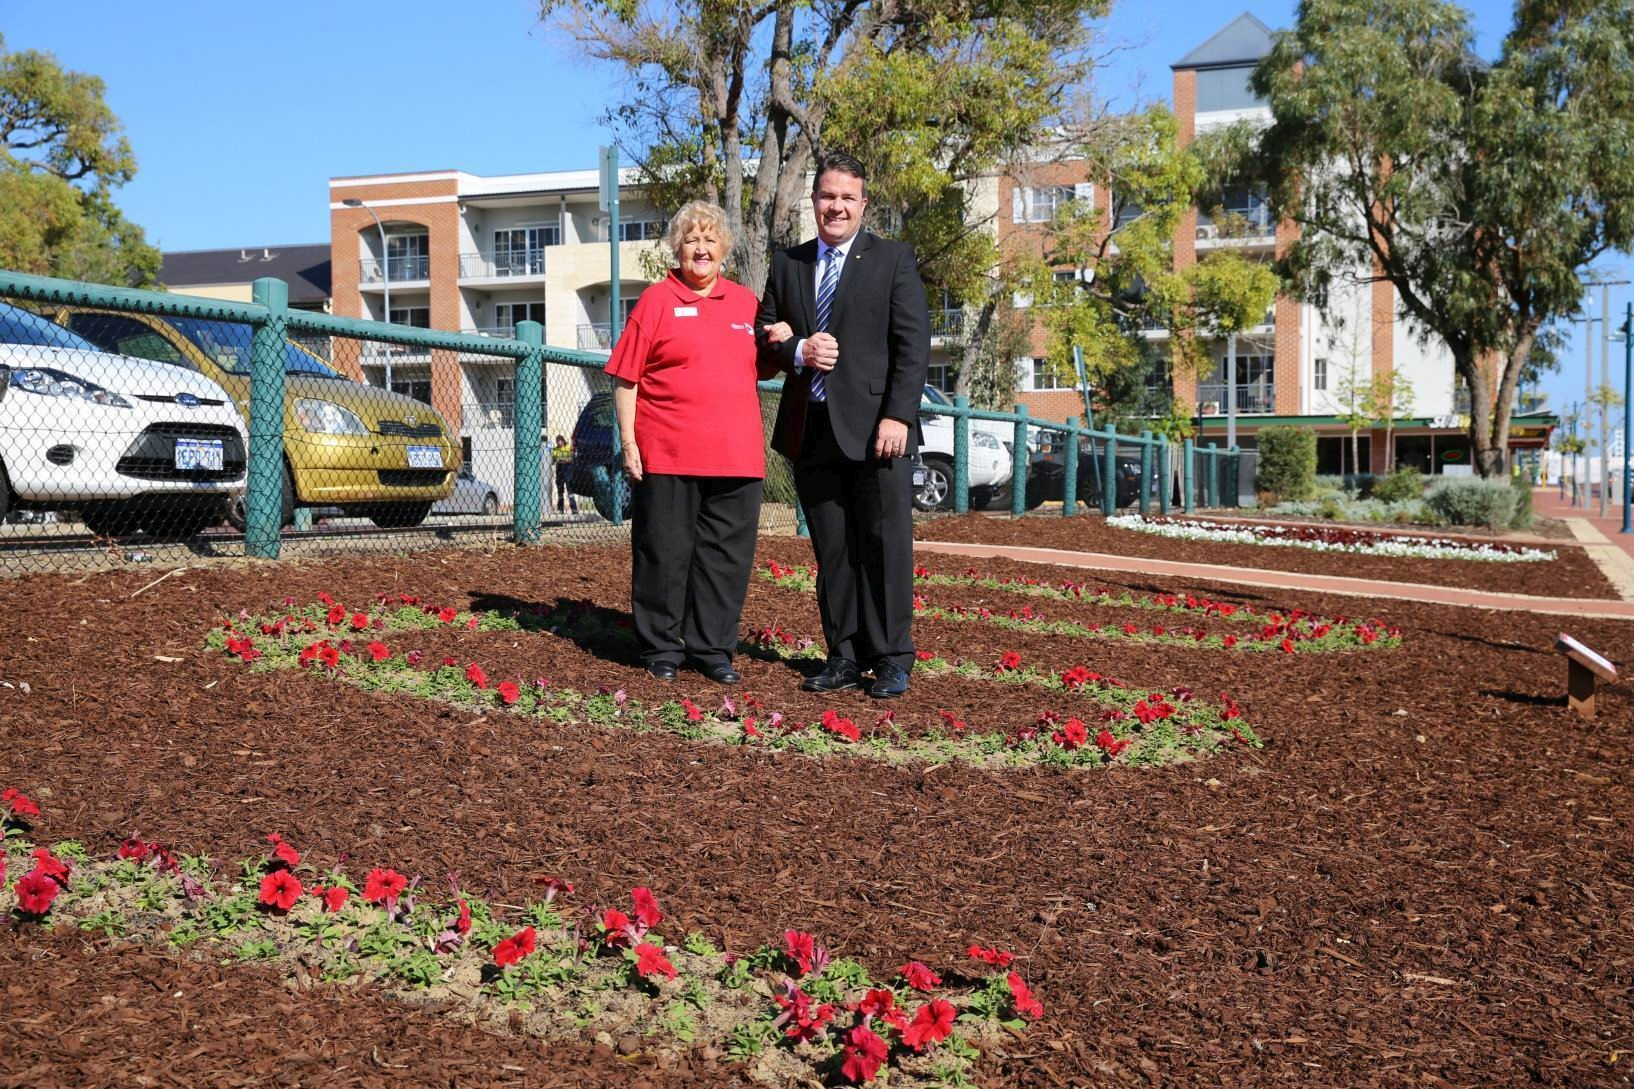 Sorrento-Duncraig Unit President Colleen Burgess and Joondalup Mayor Troy Pickard at the garden in Boas Avenue.